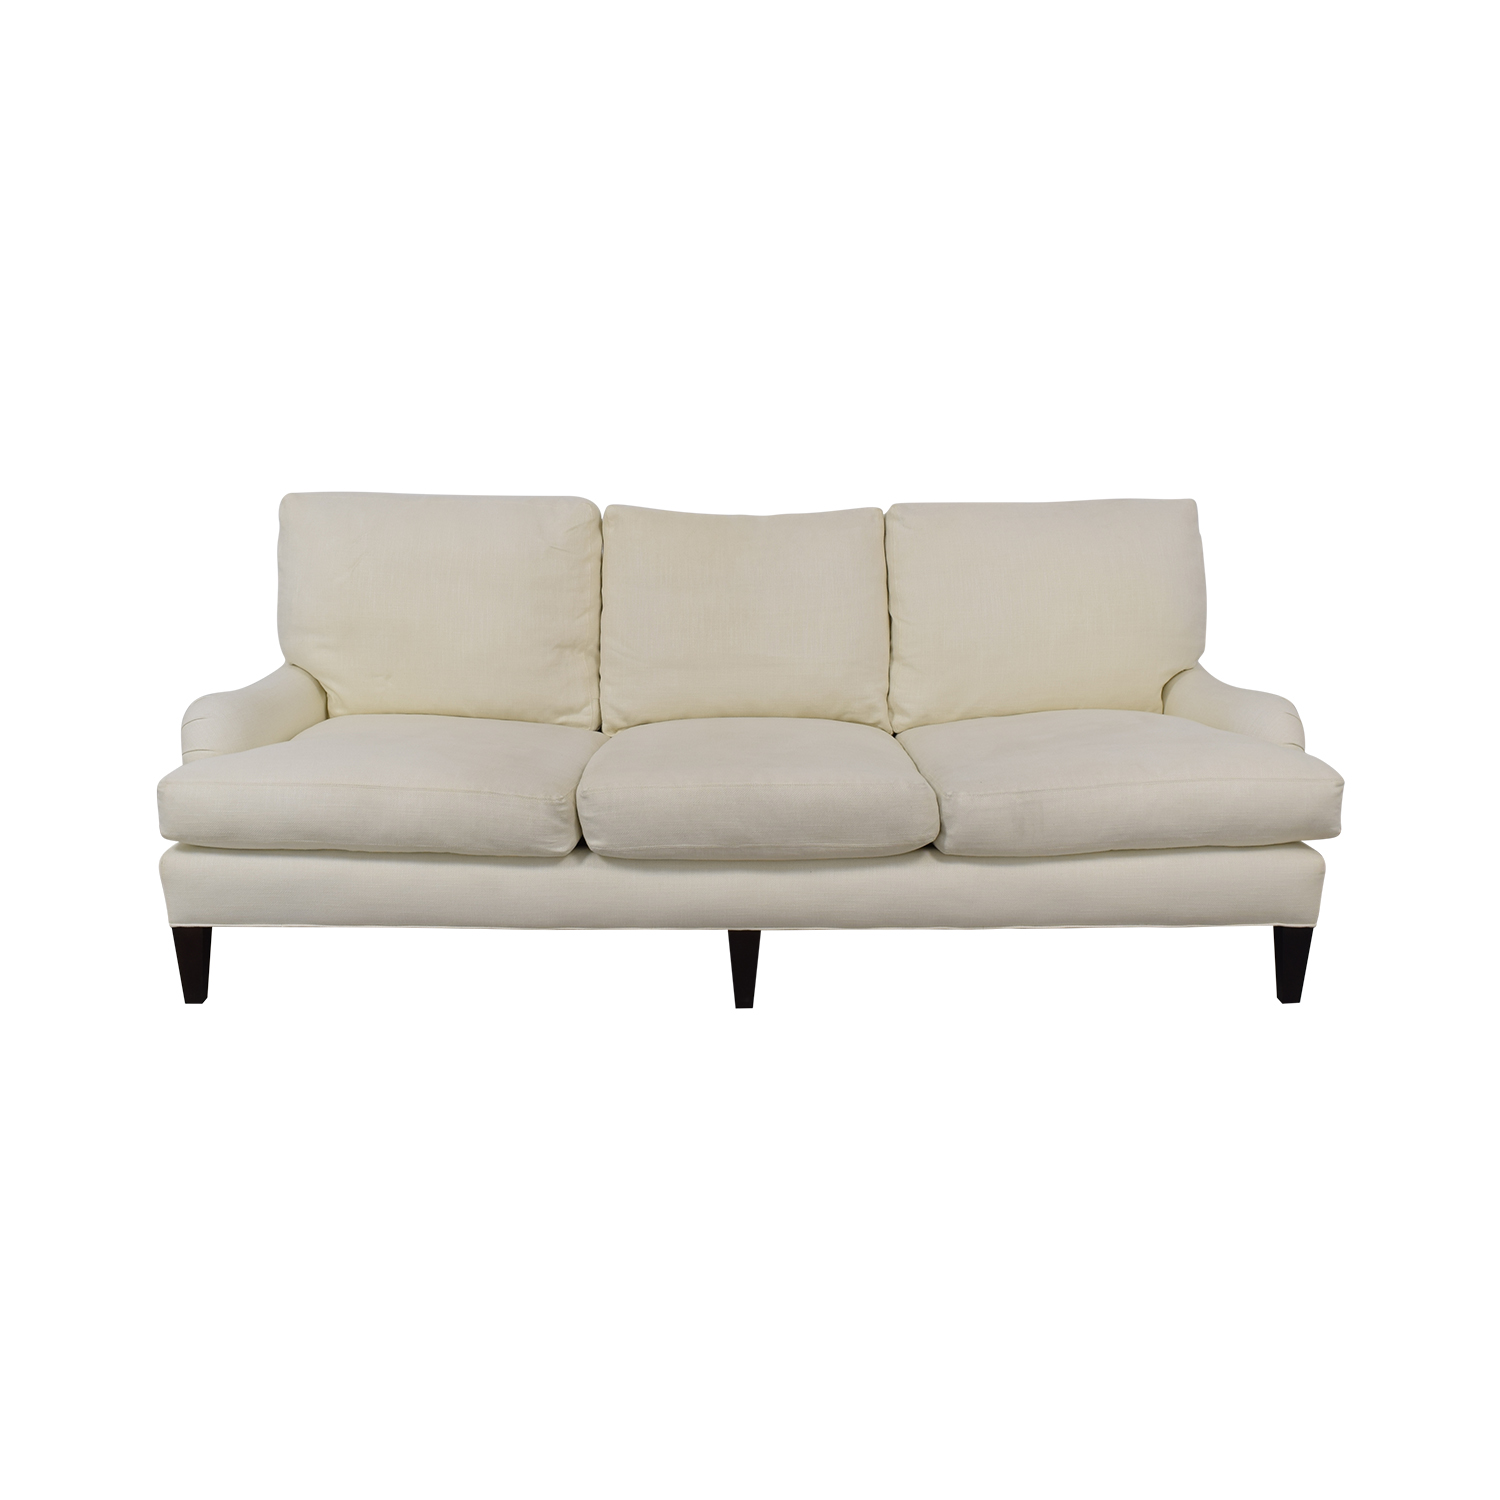 Lee Industries Custom Three Seater Sofa / Sofas